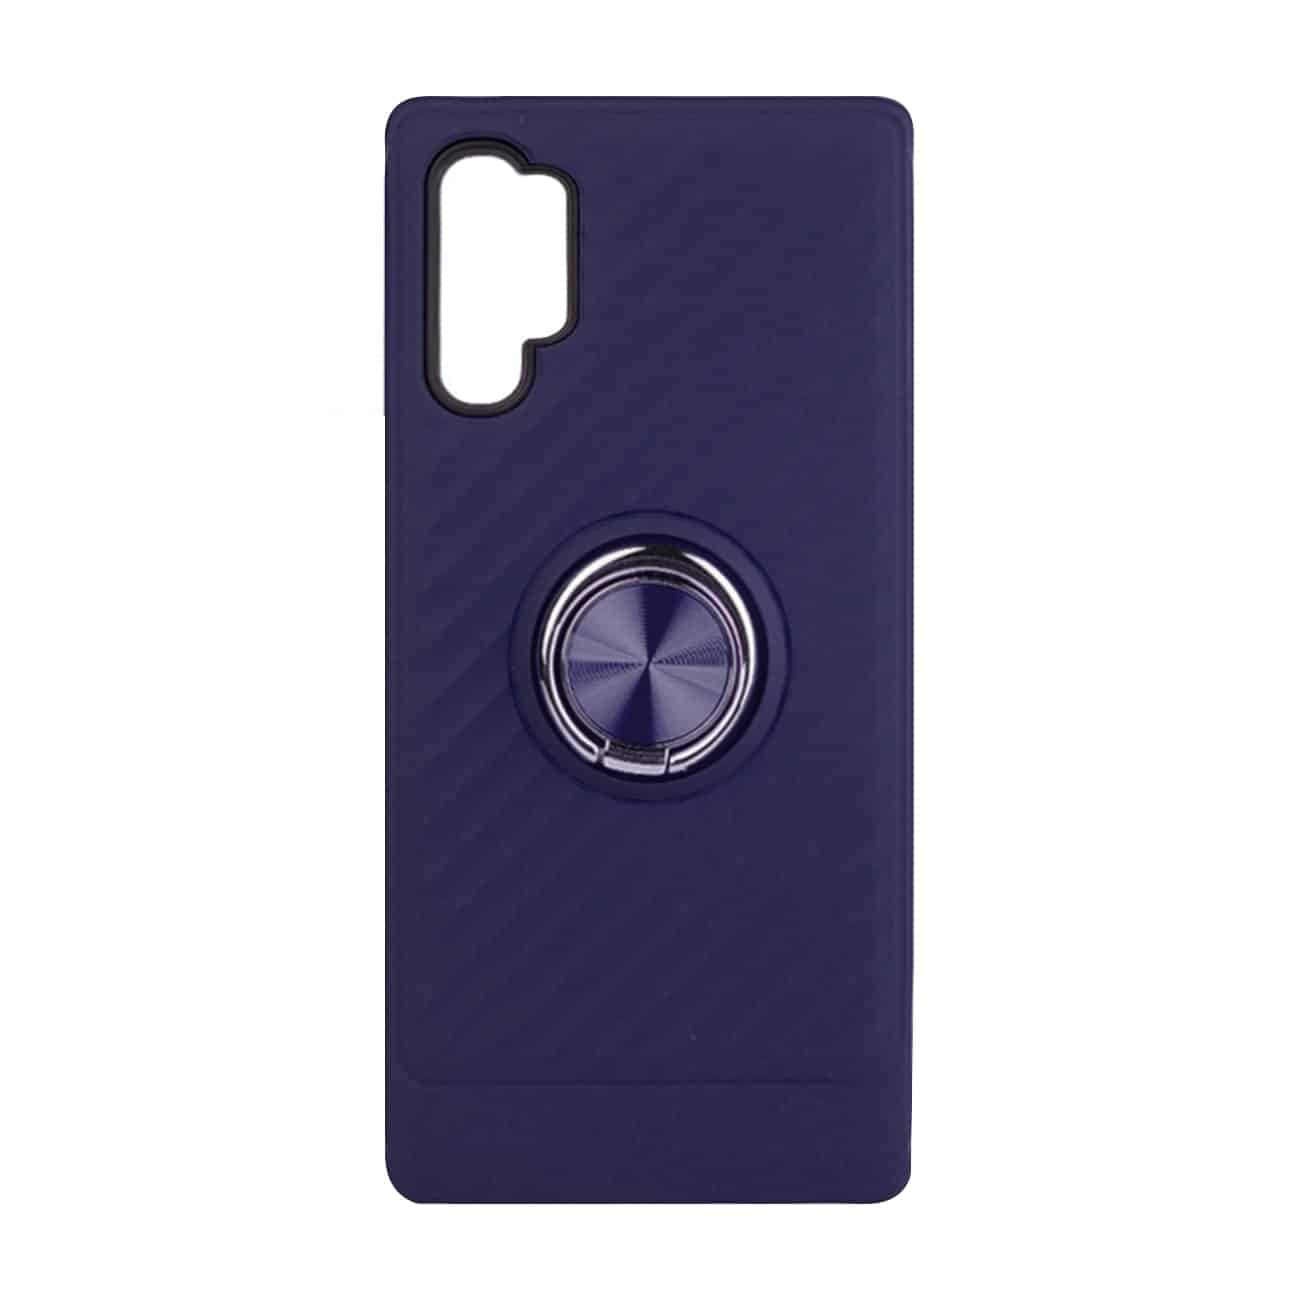 SAMSUNG GALAXY NOTE 10 PLUS Case with Ring Holder InBlue